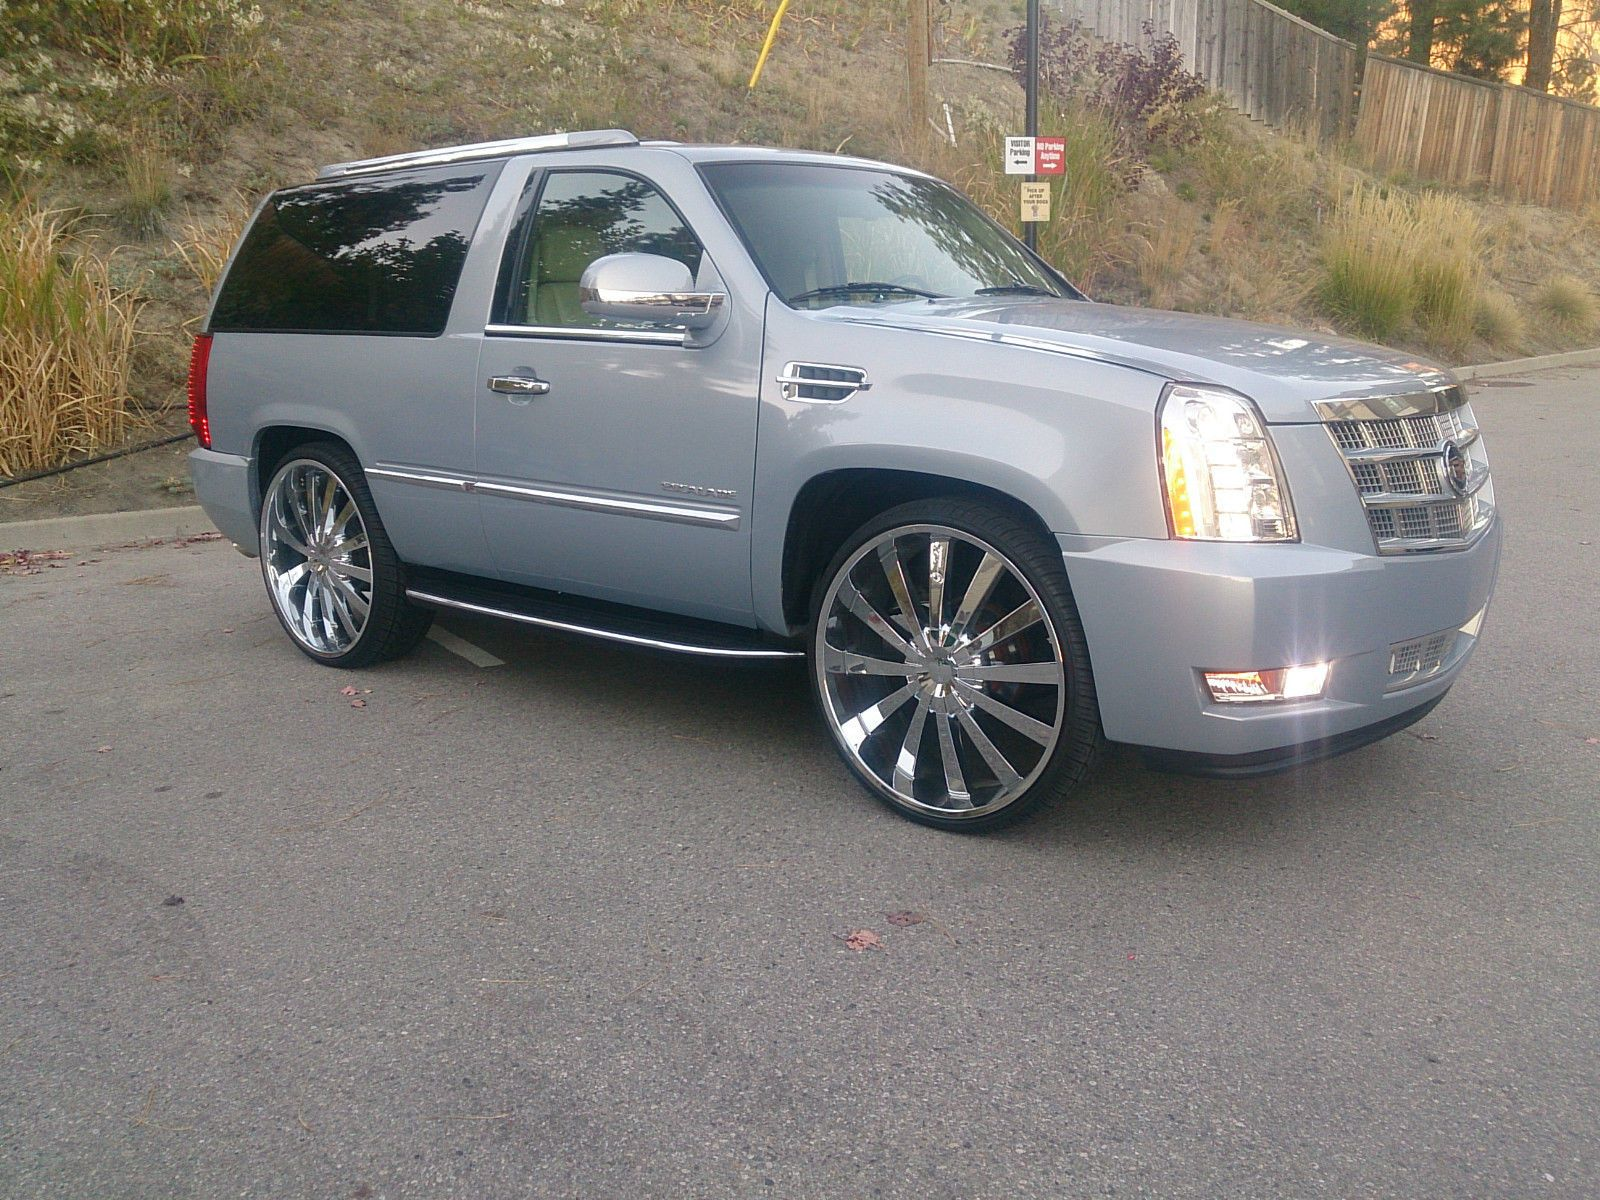 96 2 Door Tahoe Completely Converted To An Escalade 2 Door Tahoe Chevrolet Tahoe Chevy Tahoe